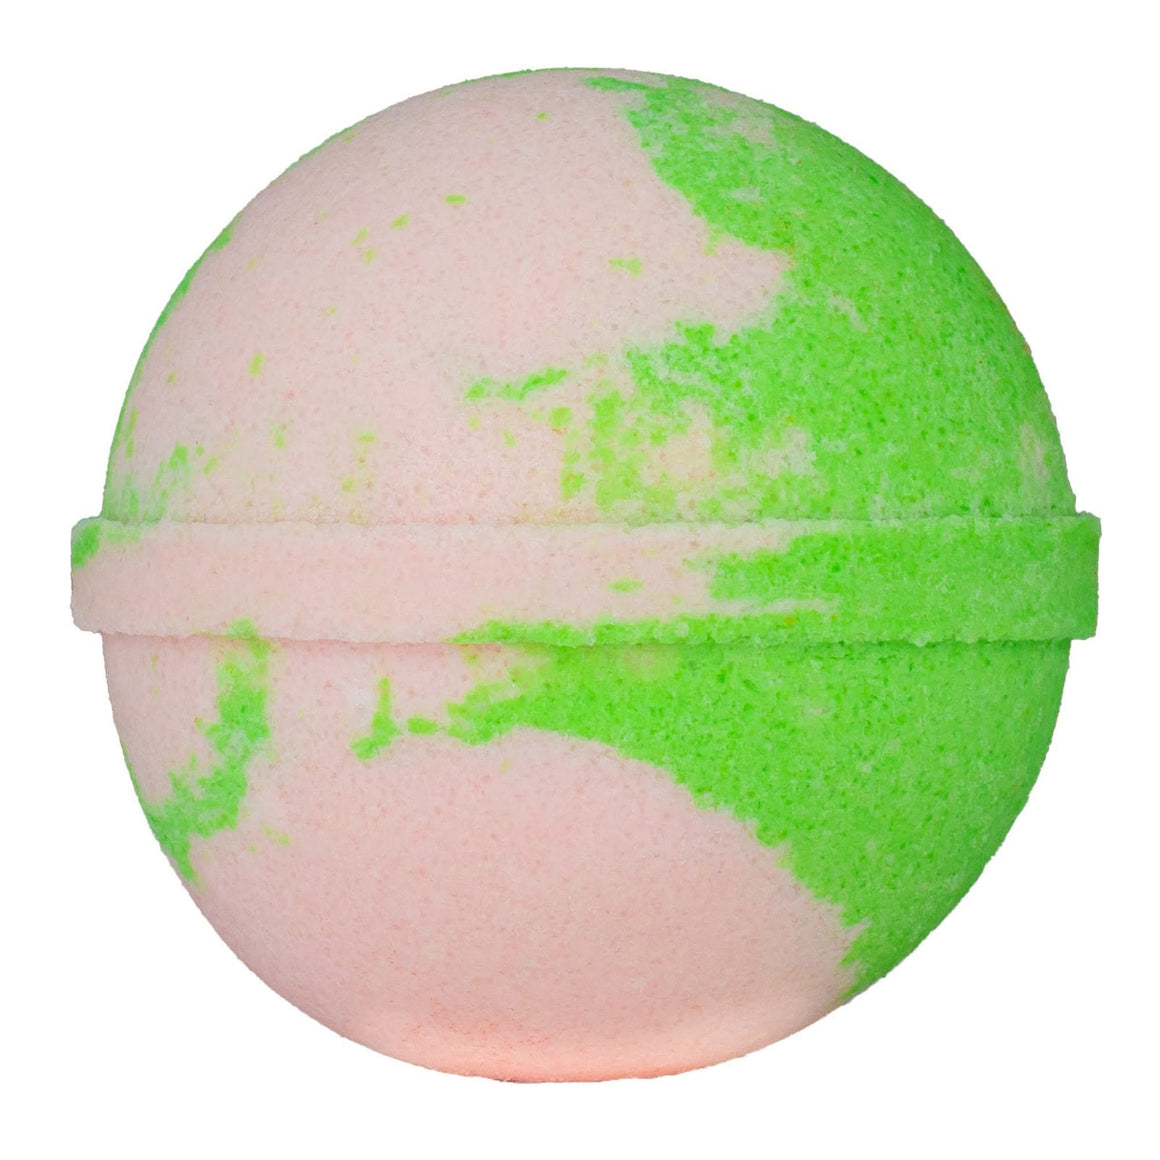 Mint Wellness CBD Bathbomb - Melon Medley at Modest Hemp Co.